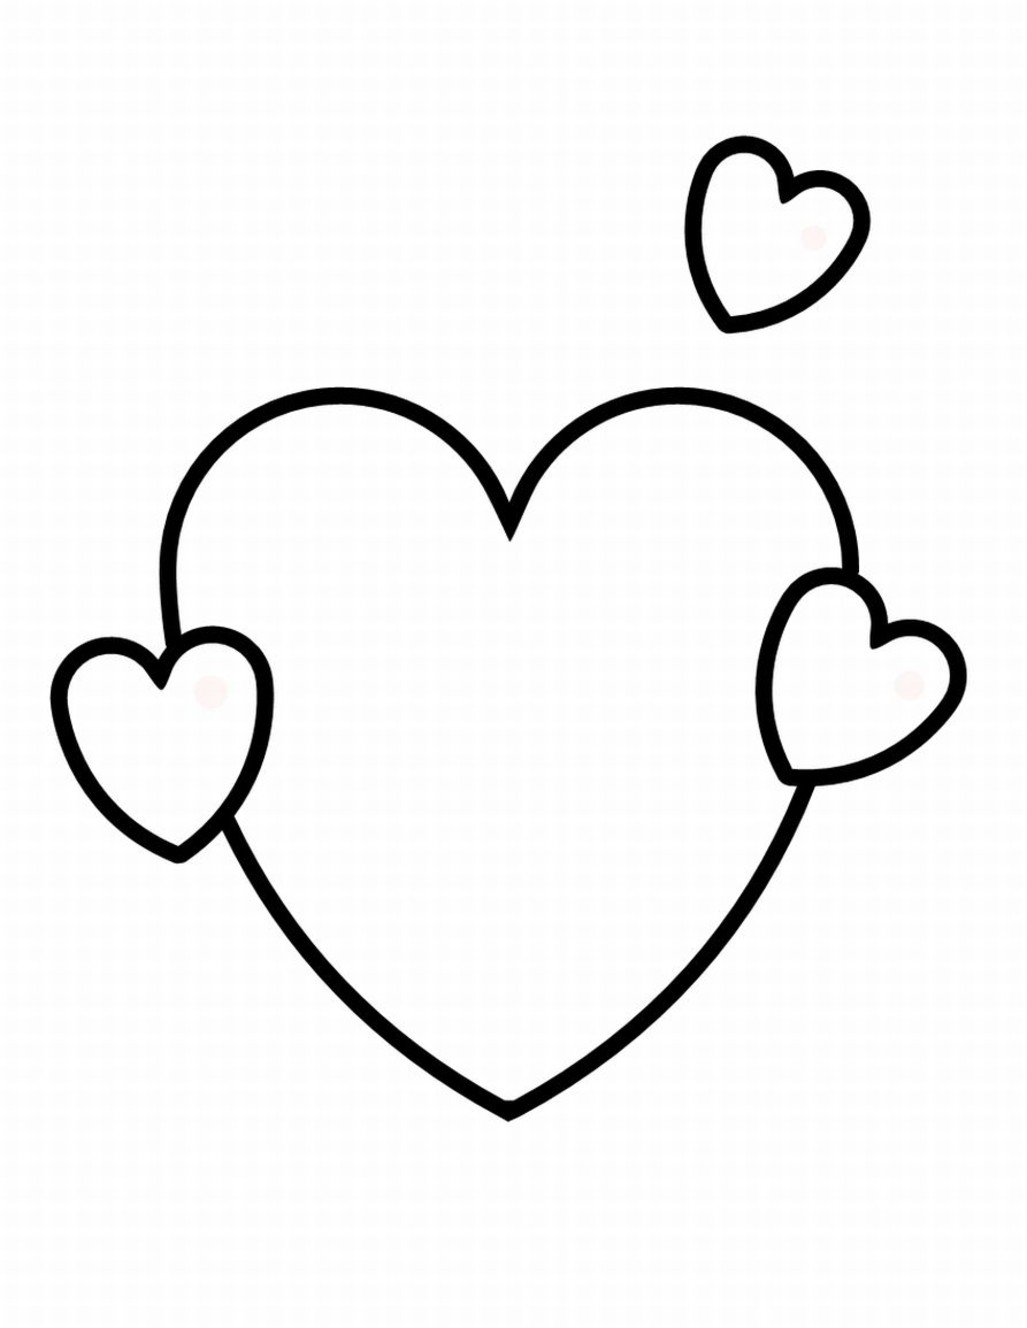 coloring heart for kids free printable heart coloring pages for kids coloring for kids heart